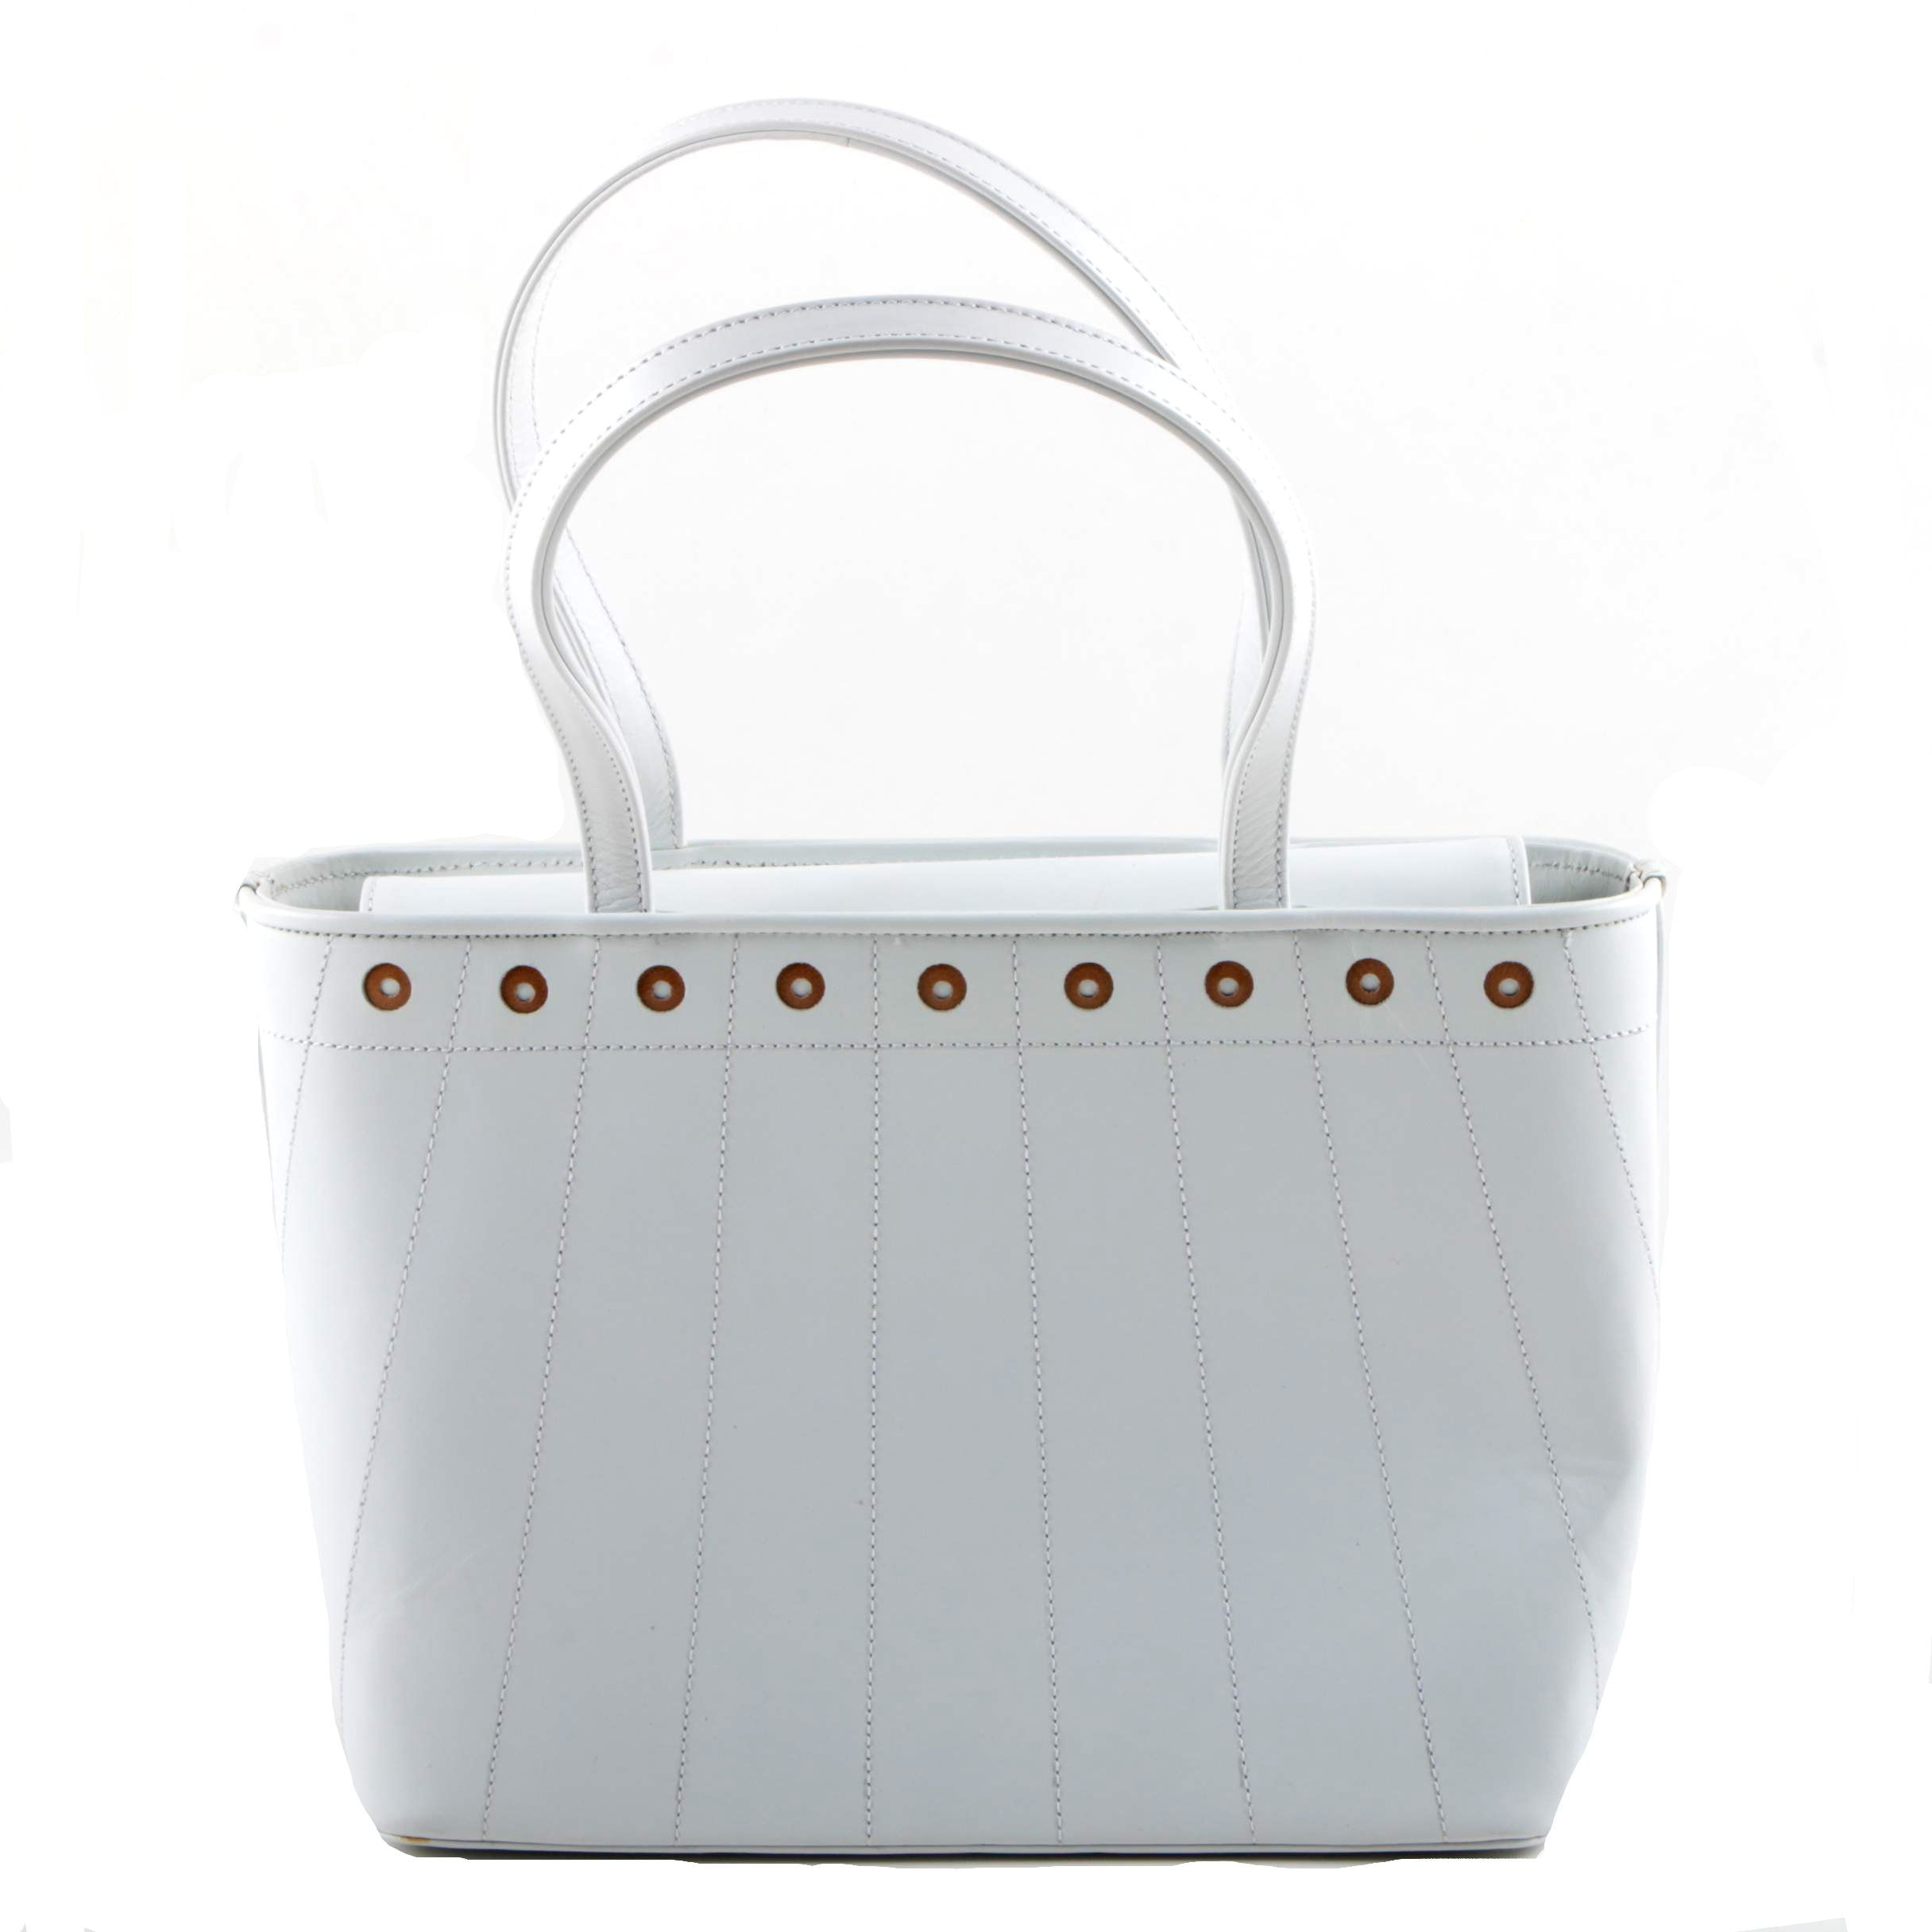 Stuart Weitzman White Leather Handbag